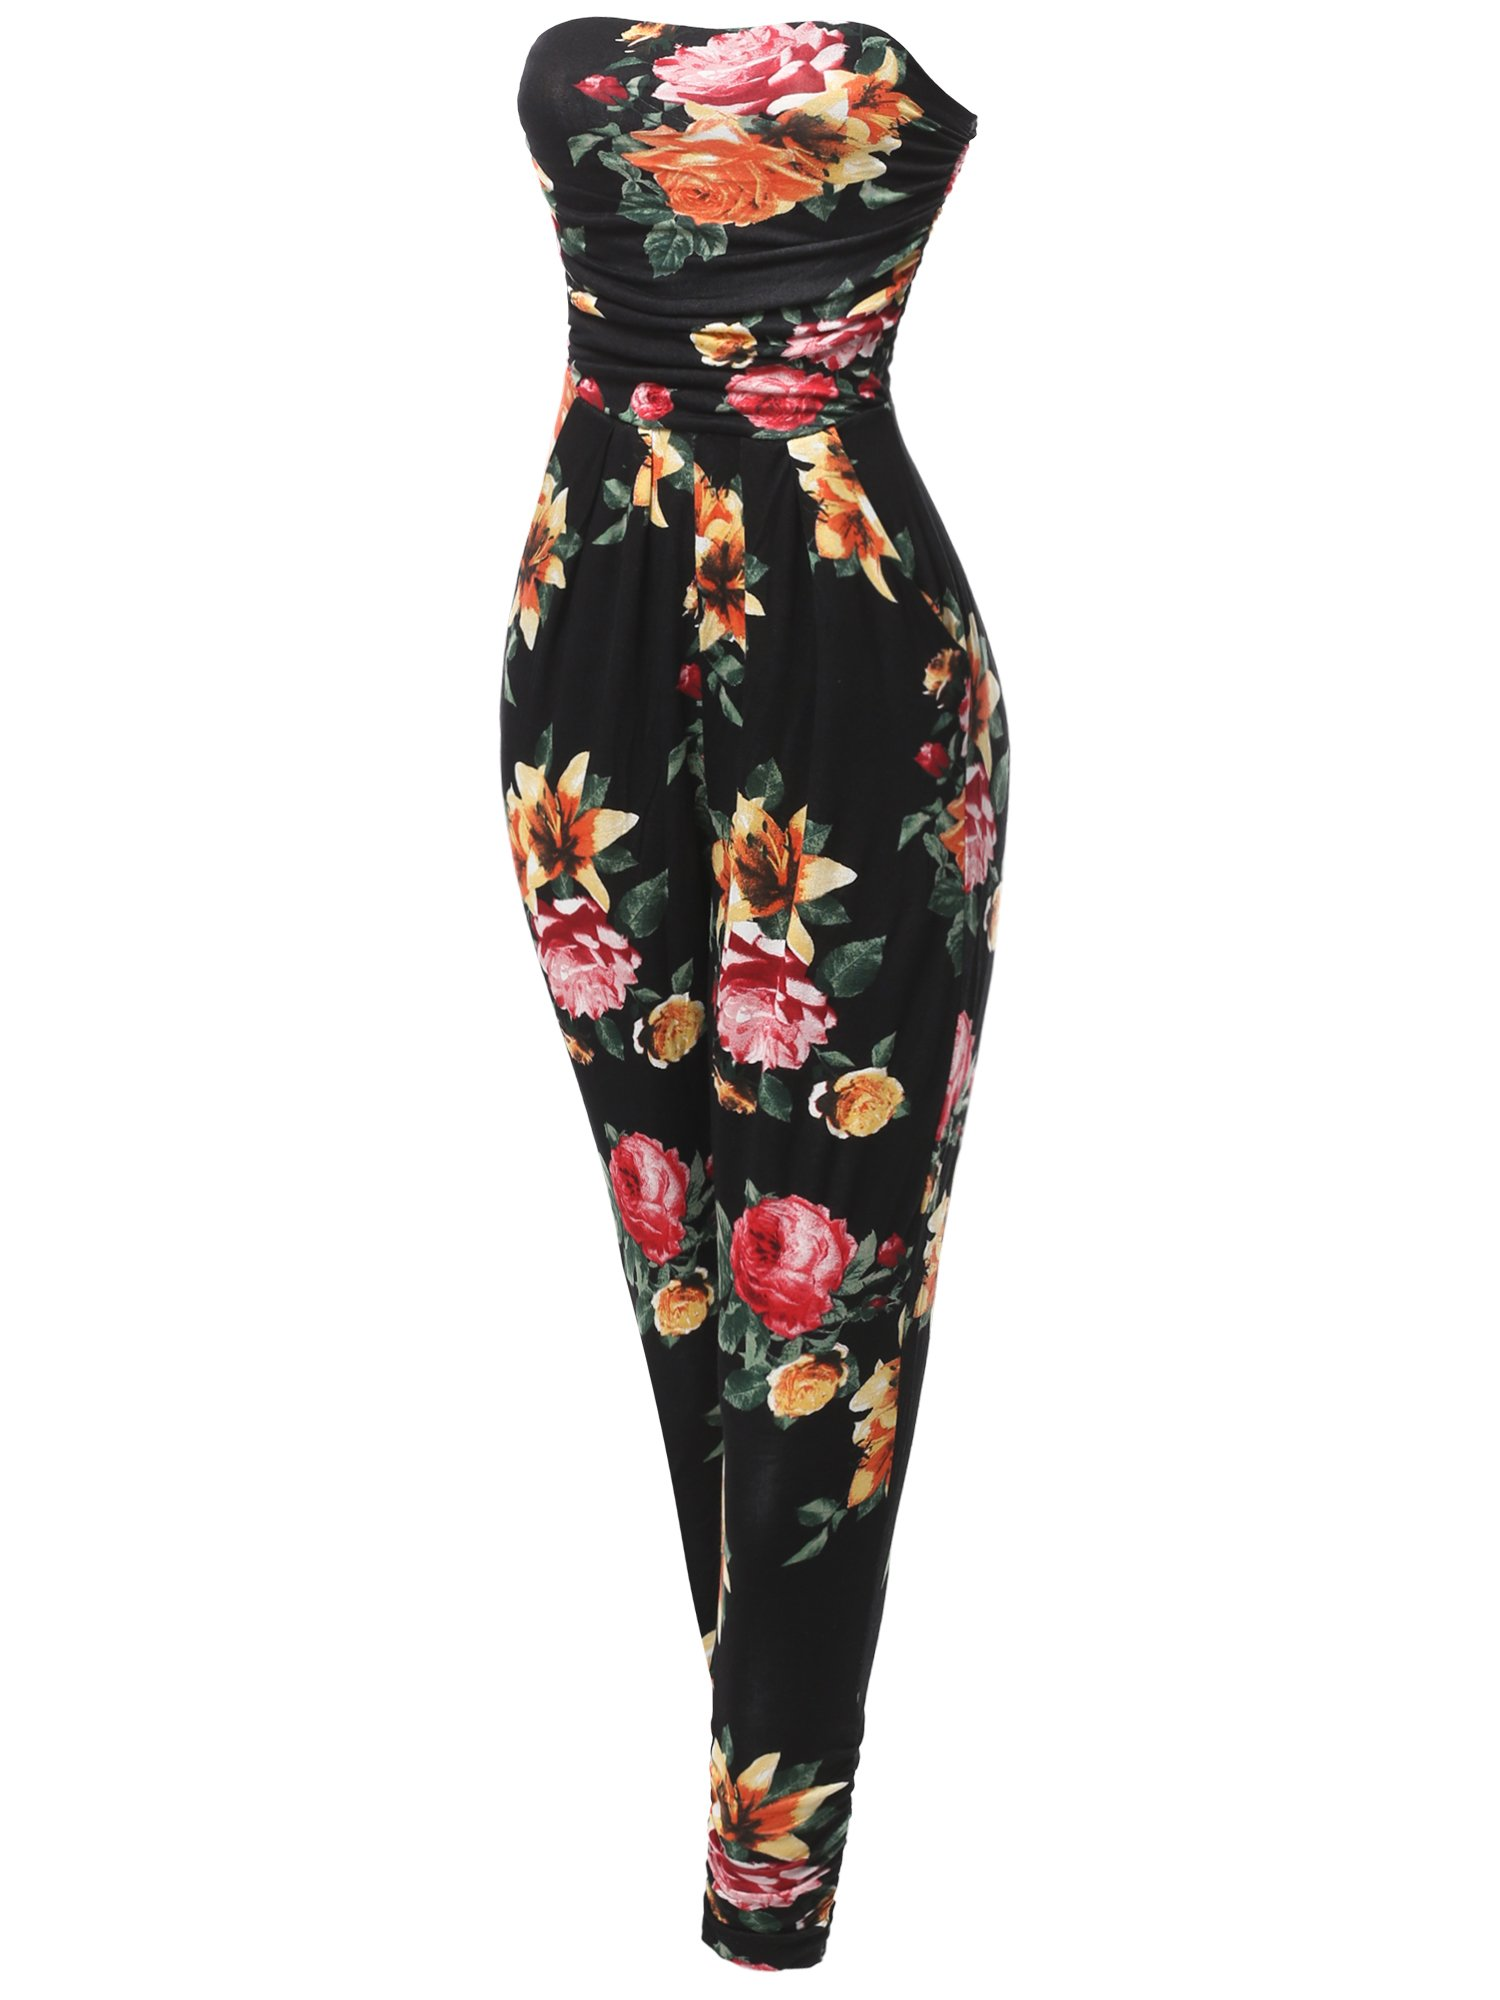 Made by Emma Casual Cute Sexy Side Pockets Shirring Stretchable Floral Tube Top Jumpsuit L